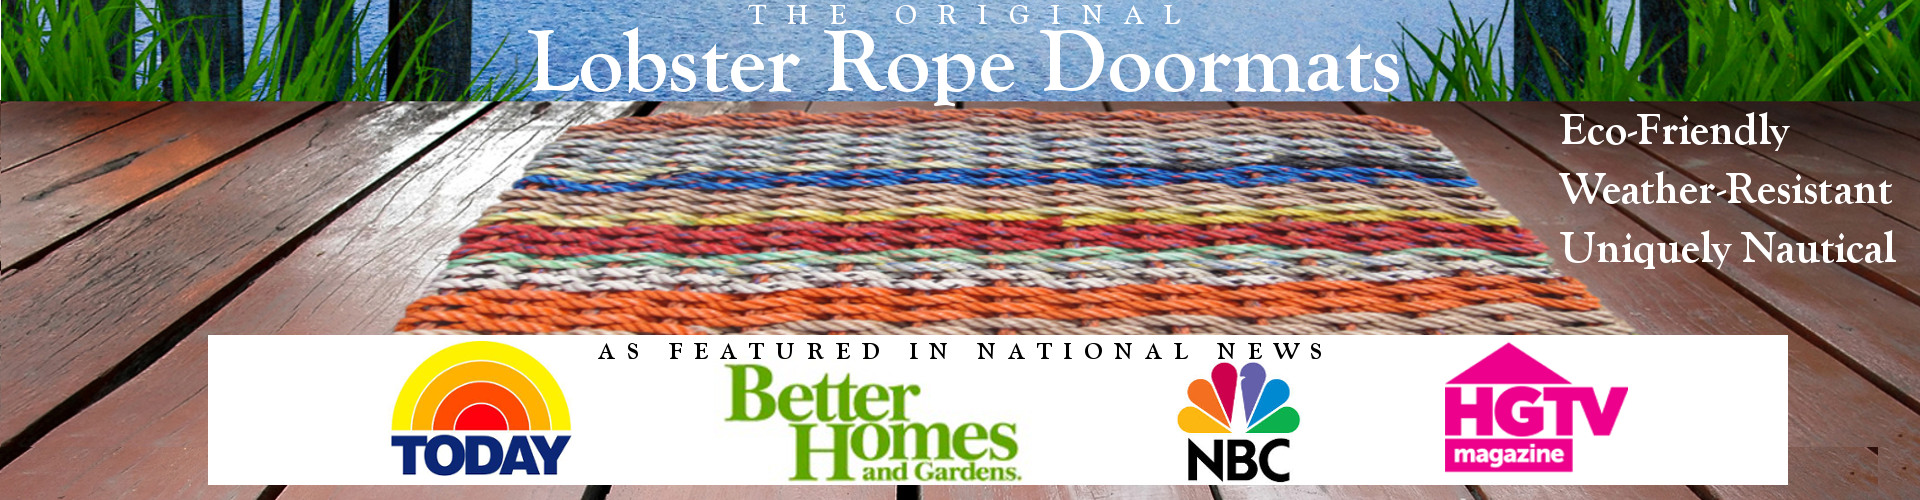 The Original Lobster Rope Doormats...Eco-Friendly, Weather-Resistant, Uniquely Nautical...As Seen on NBC TODAY Show